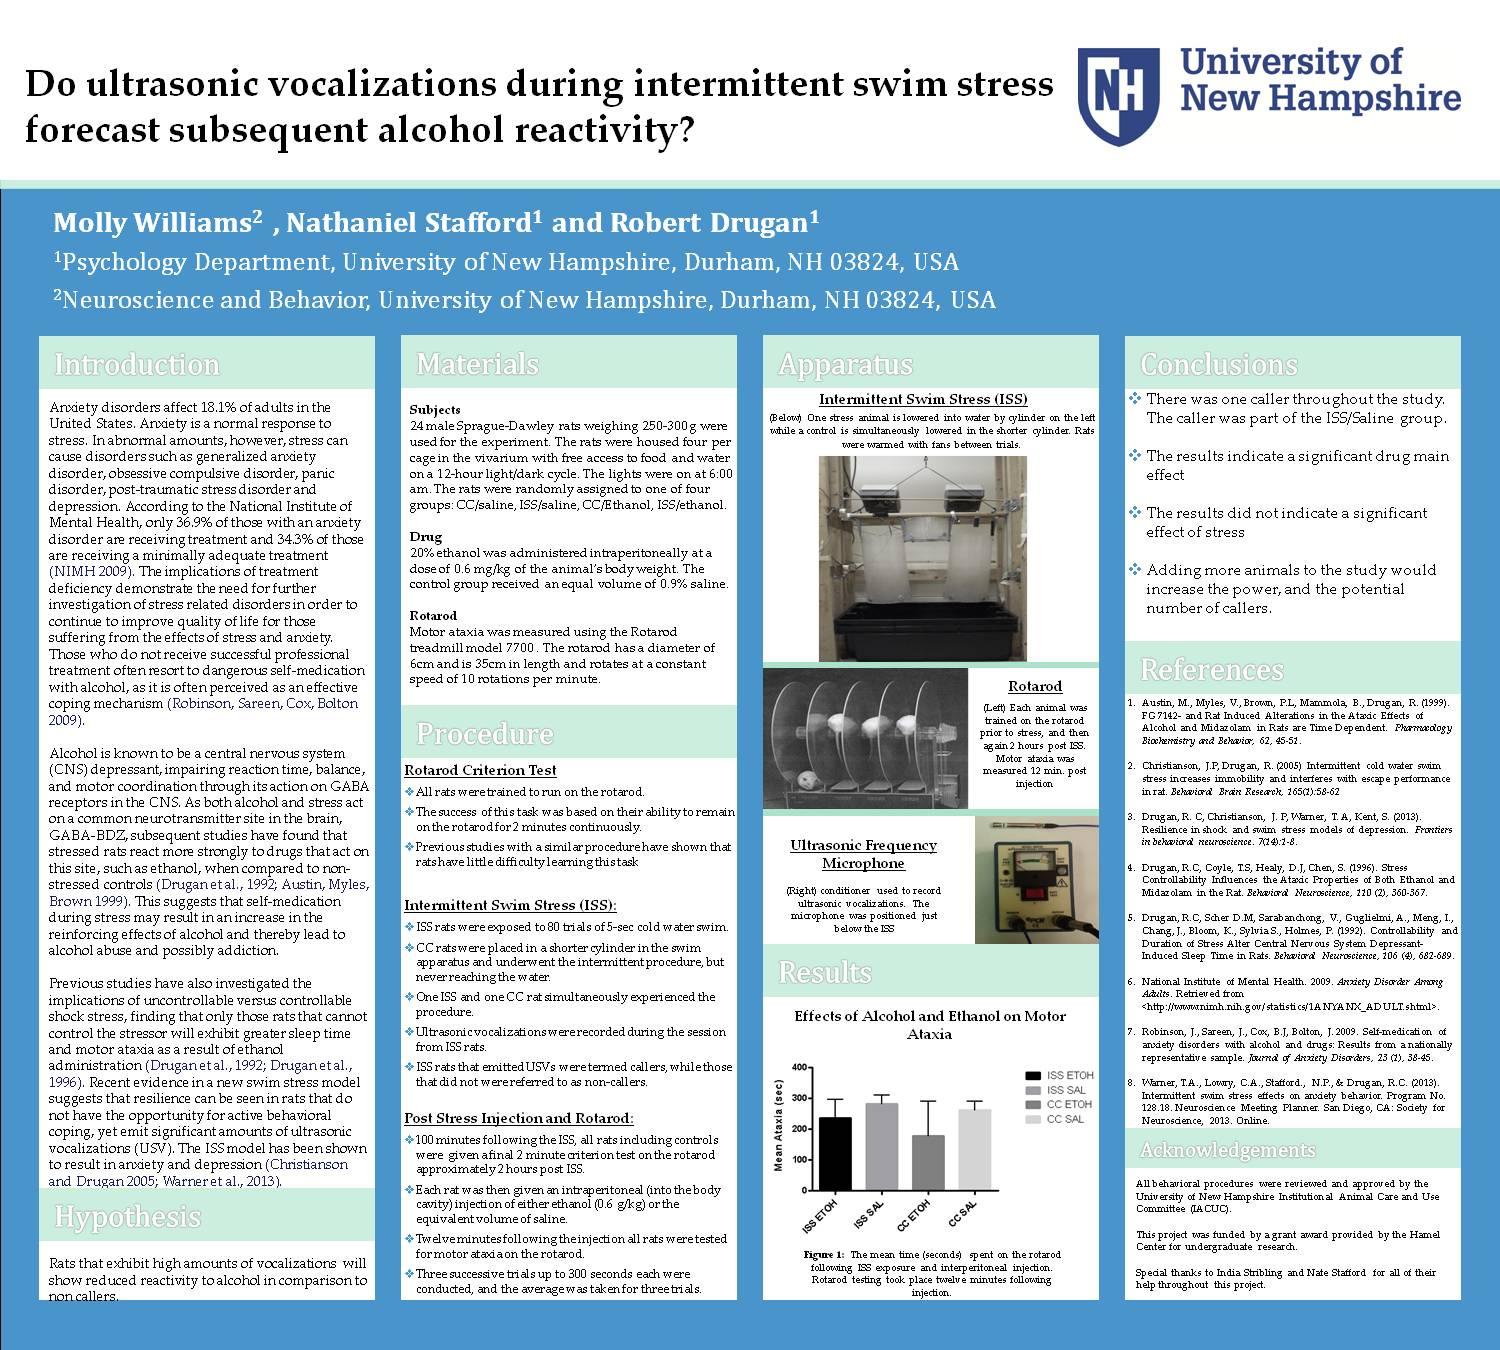 Do Ultrasonic Vocalizations During Intermittent Swim Stress Forecast Subsequent Alcohol Reactivity? by nhj9